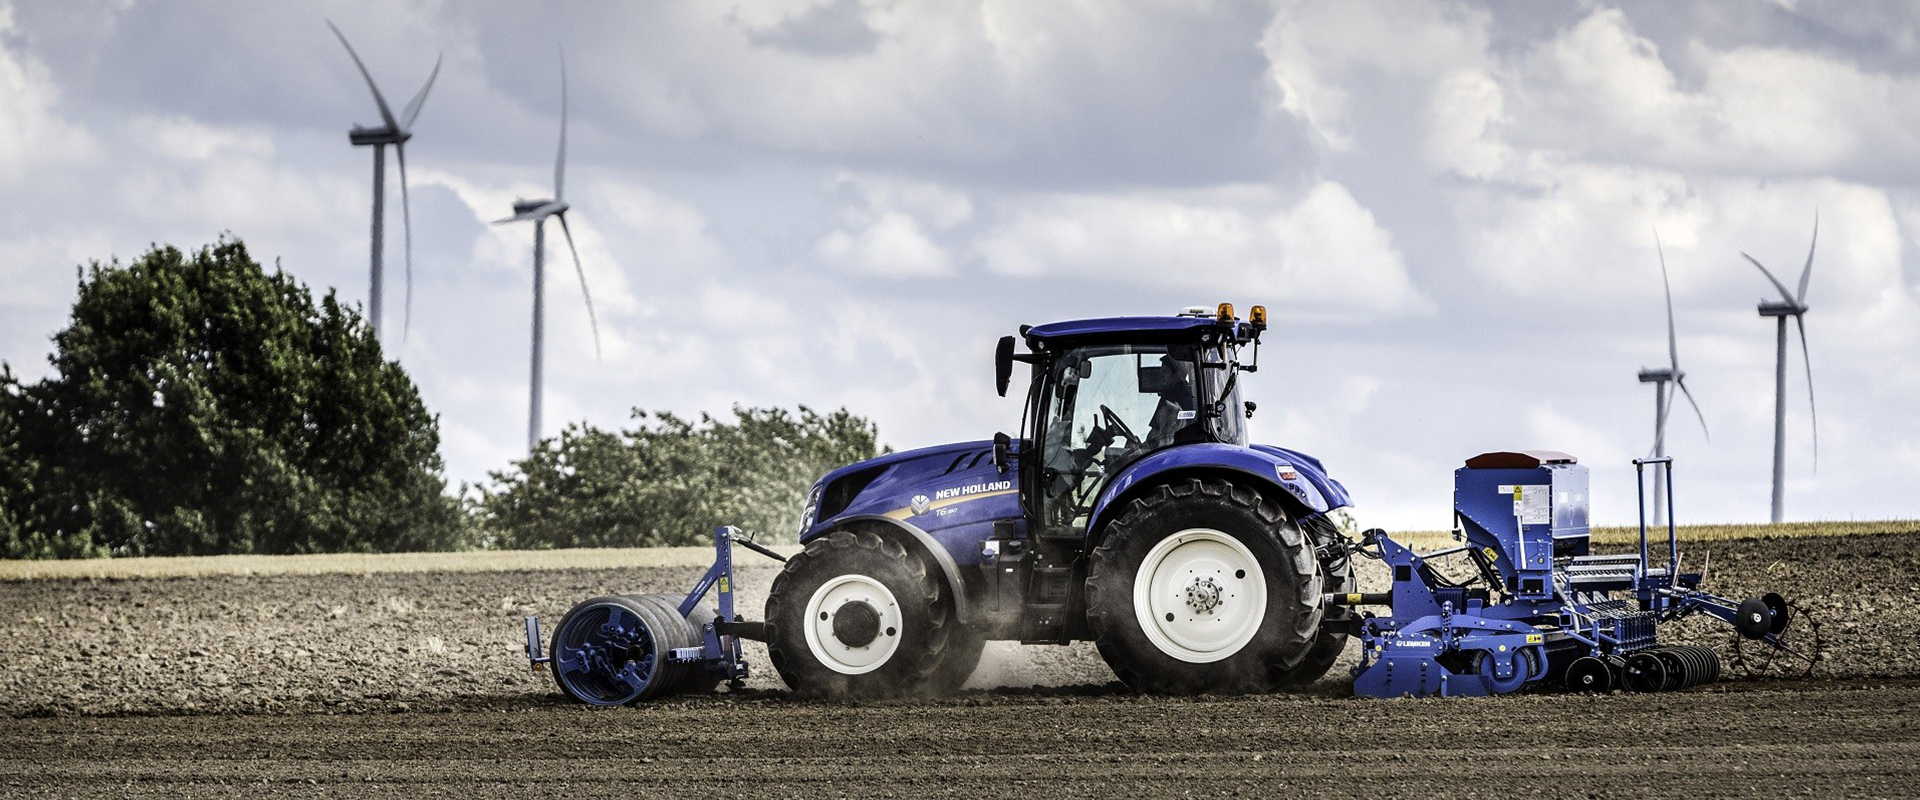 New Holland Agricultural